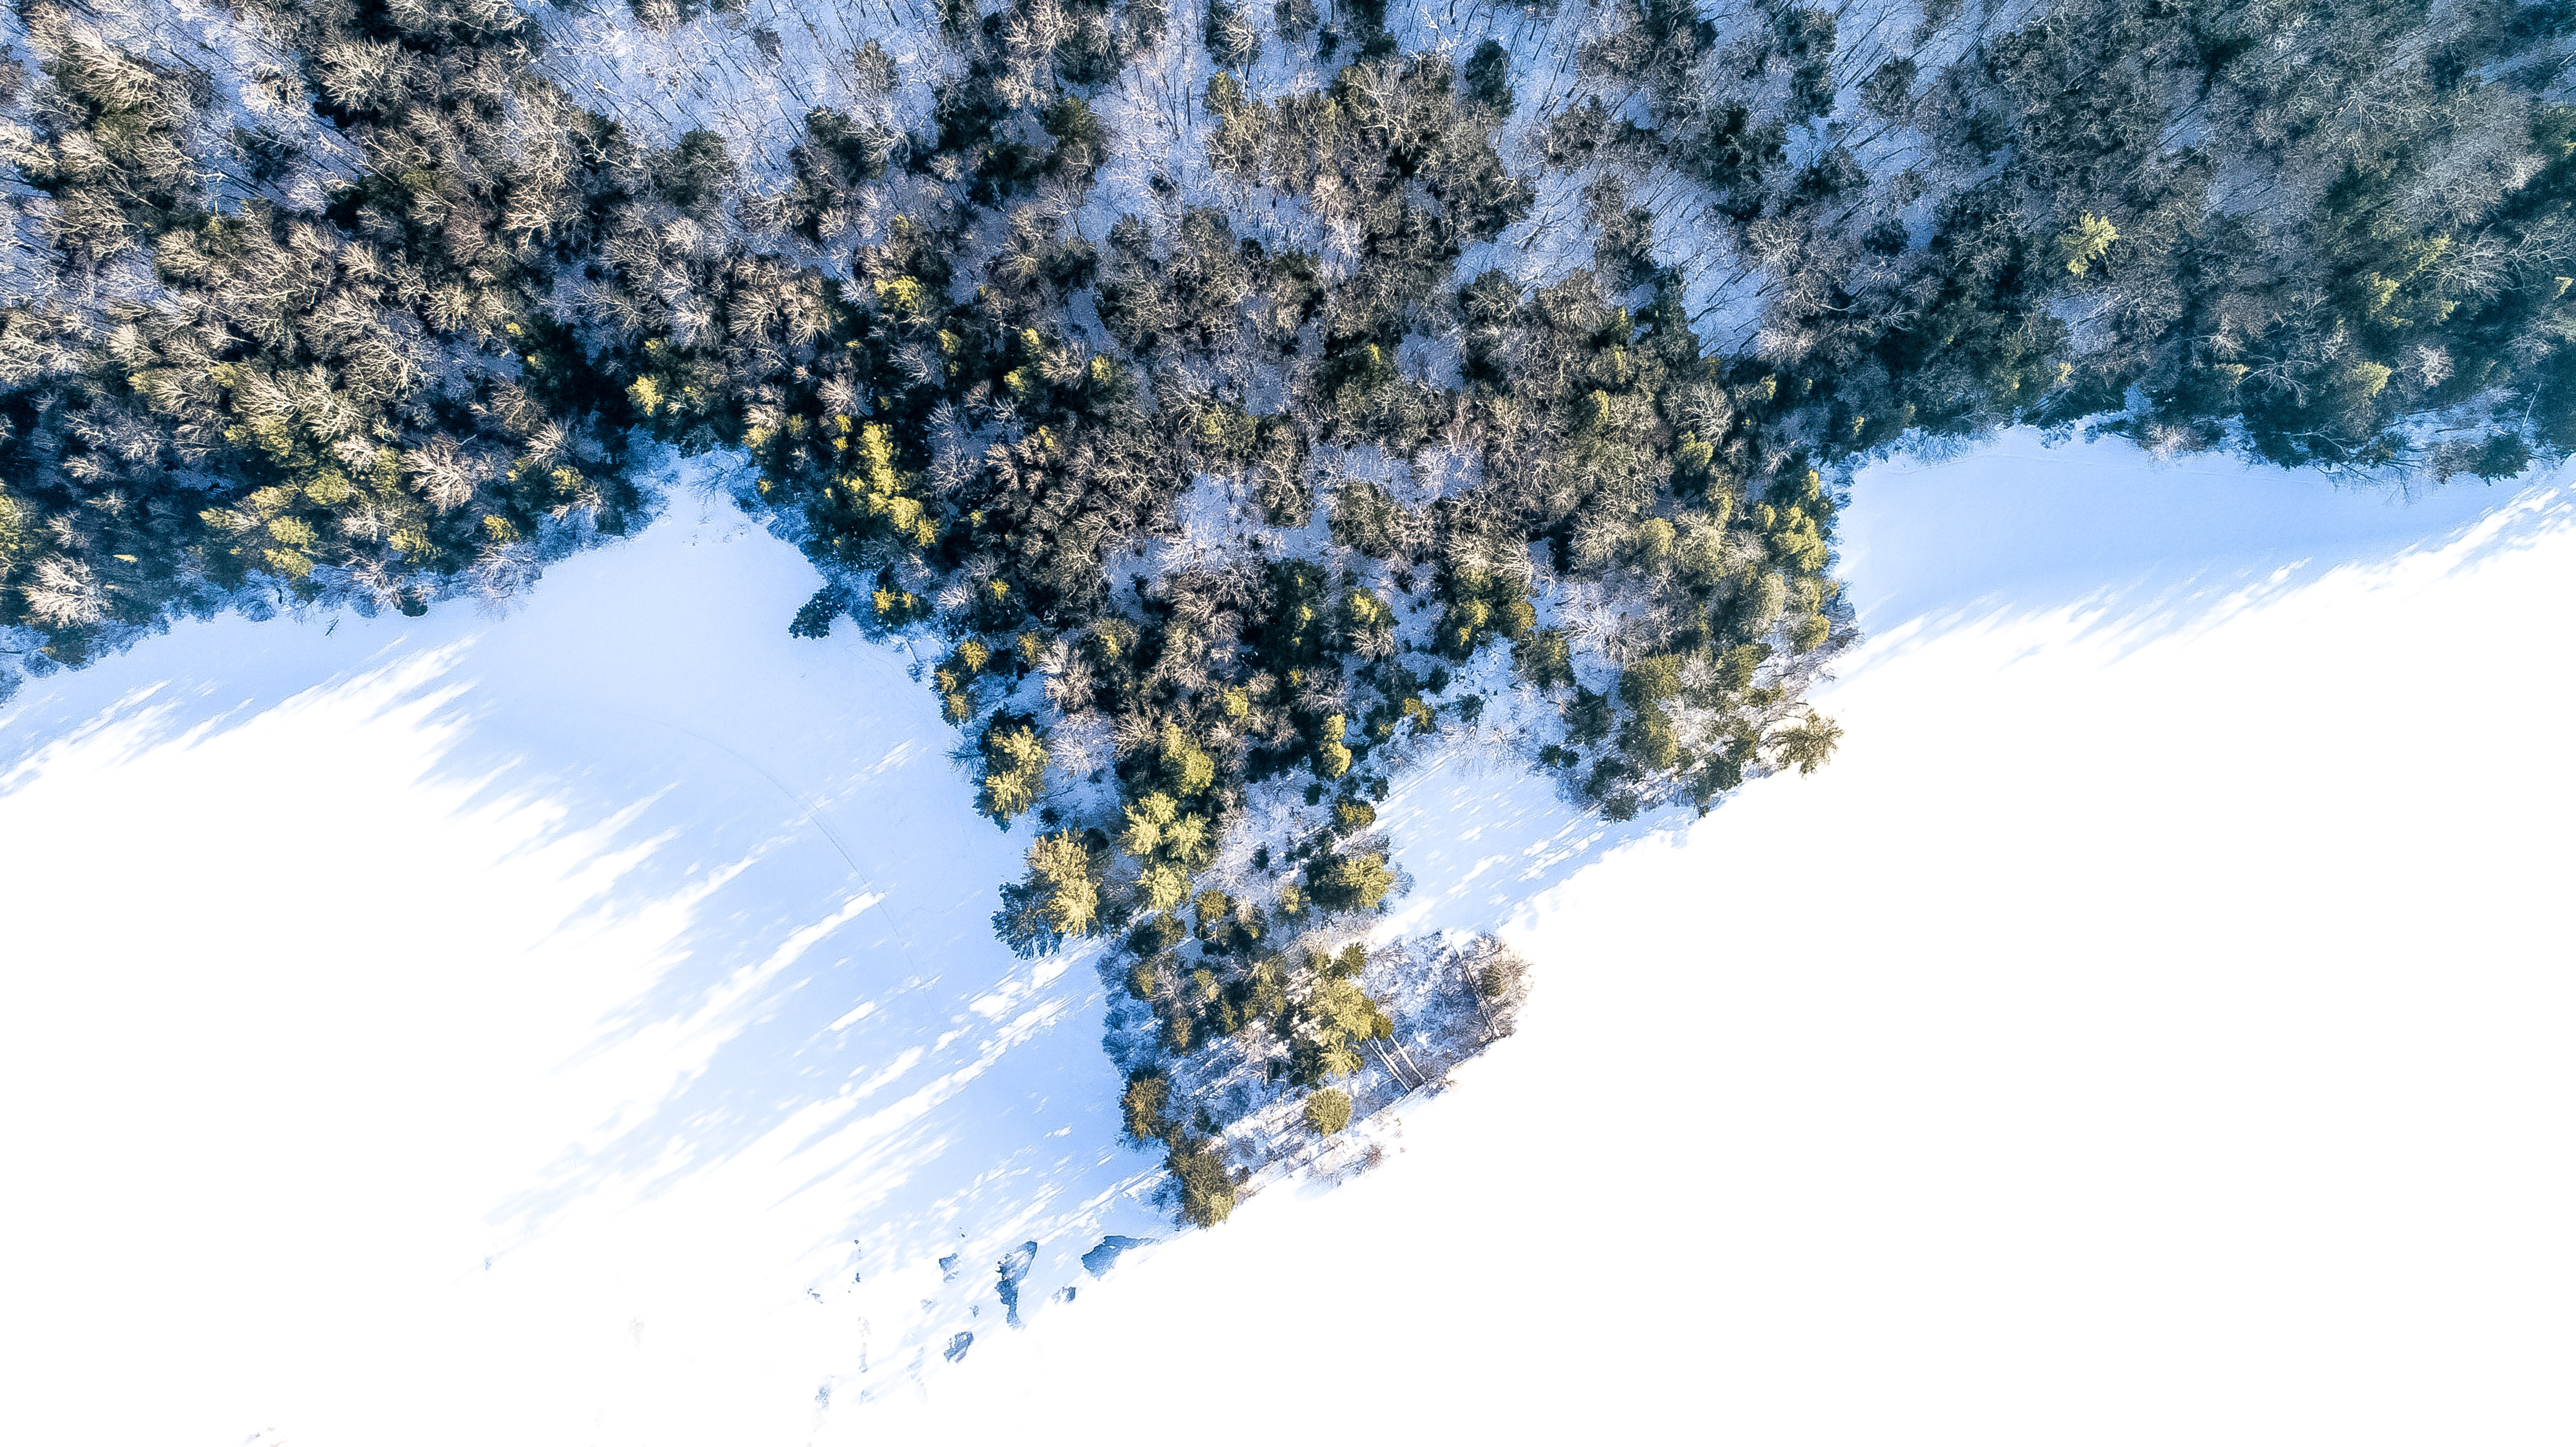 bird's-eye view photography of snow plain and trees